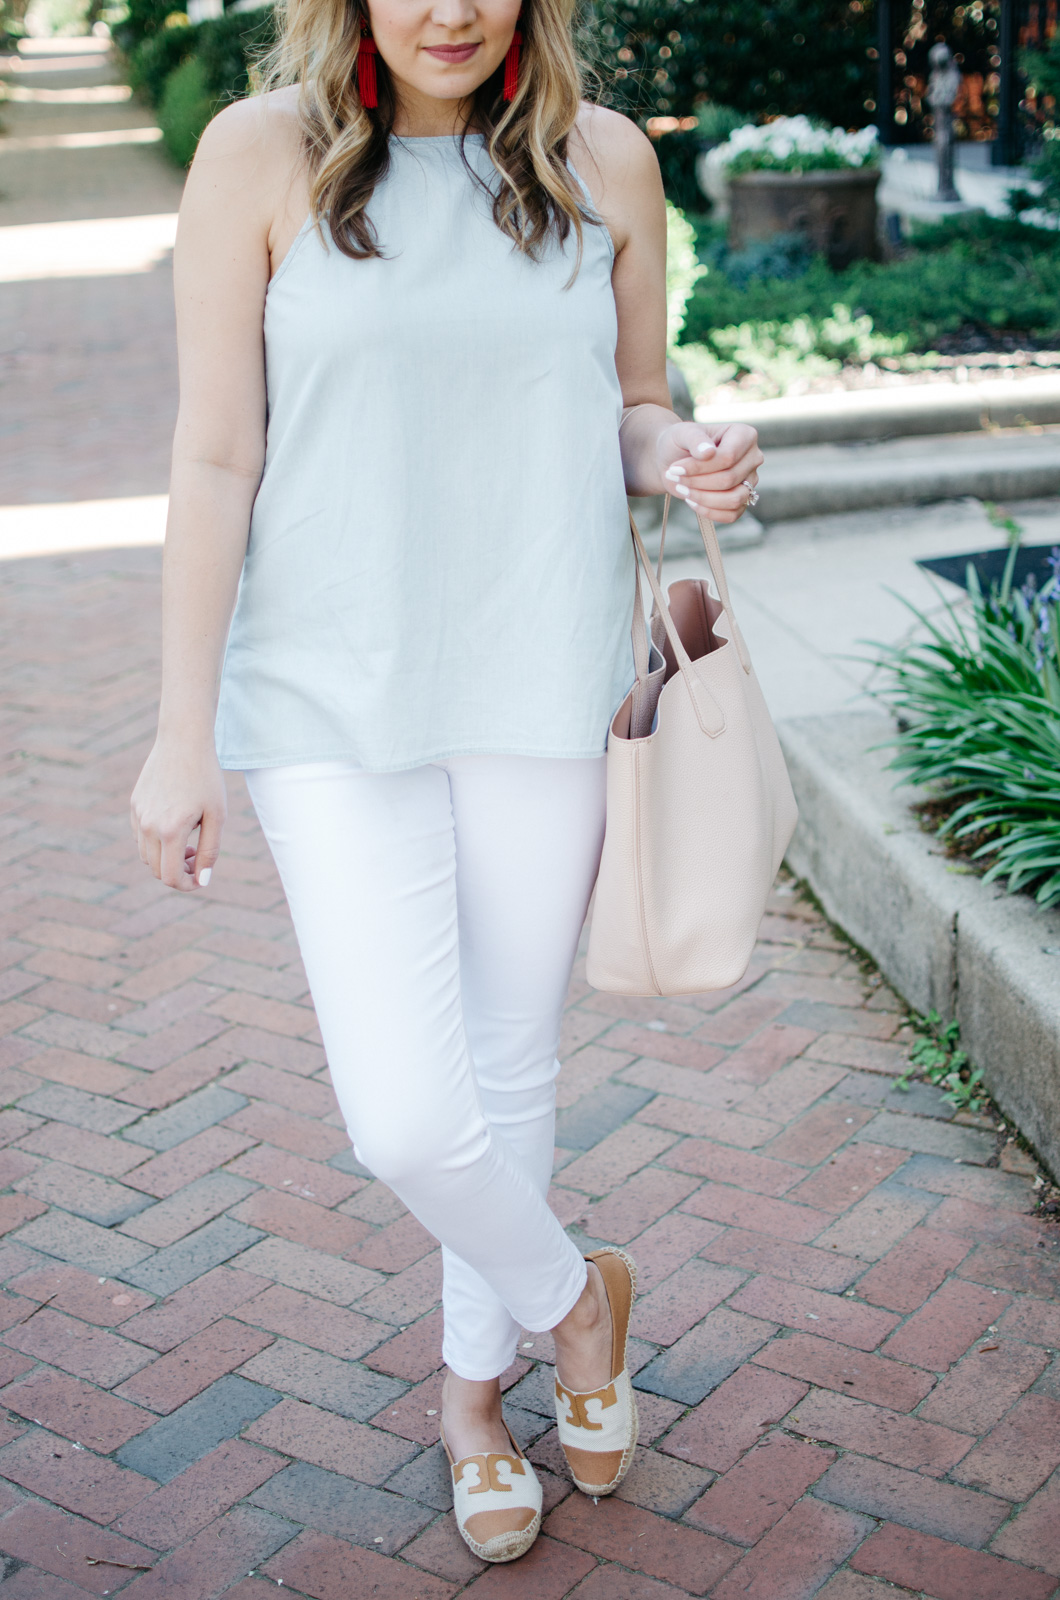 best spring outfit - chambray and white denim | For more cute spring outfit ideas, head to bylaurenm.com!